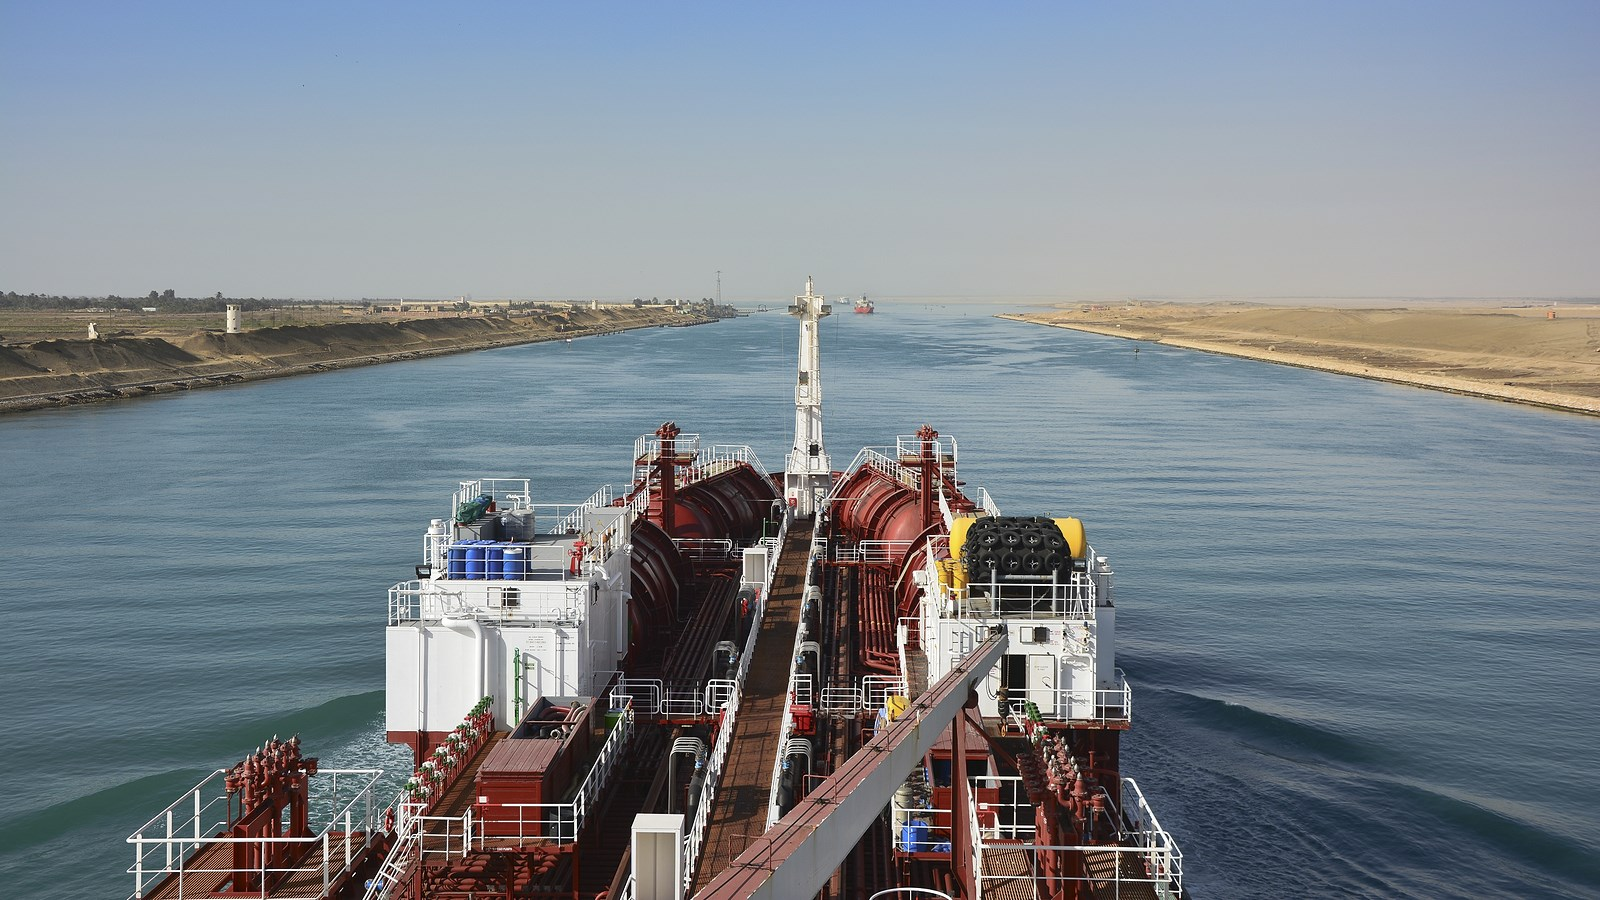 suez canal frequently used toll rebate schemes